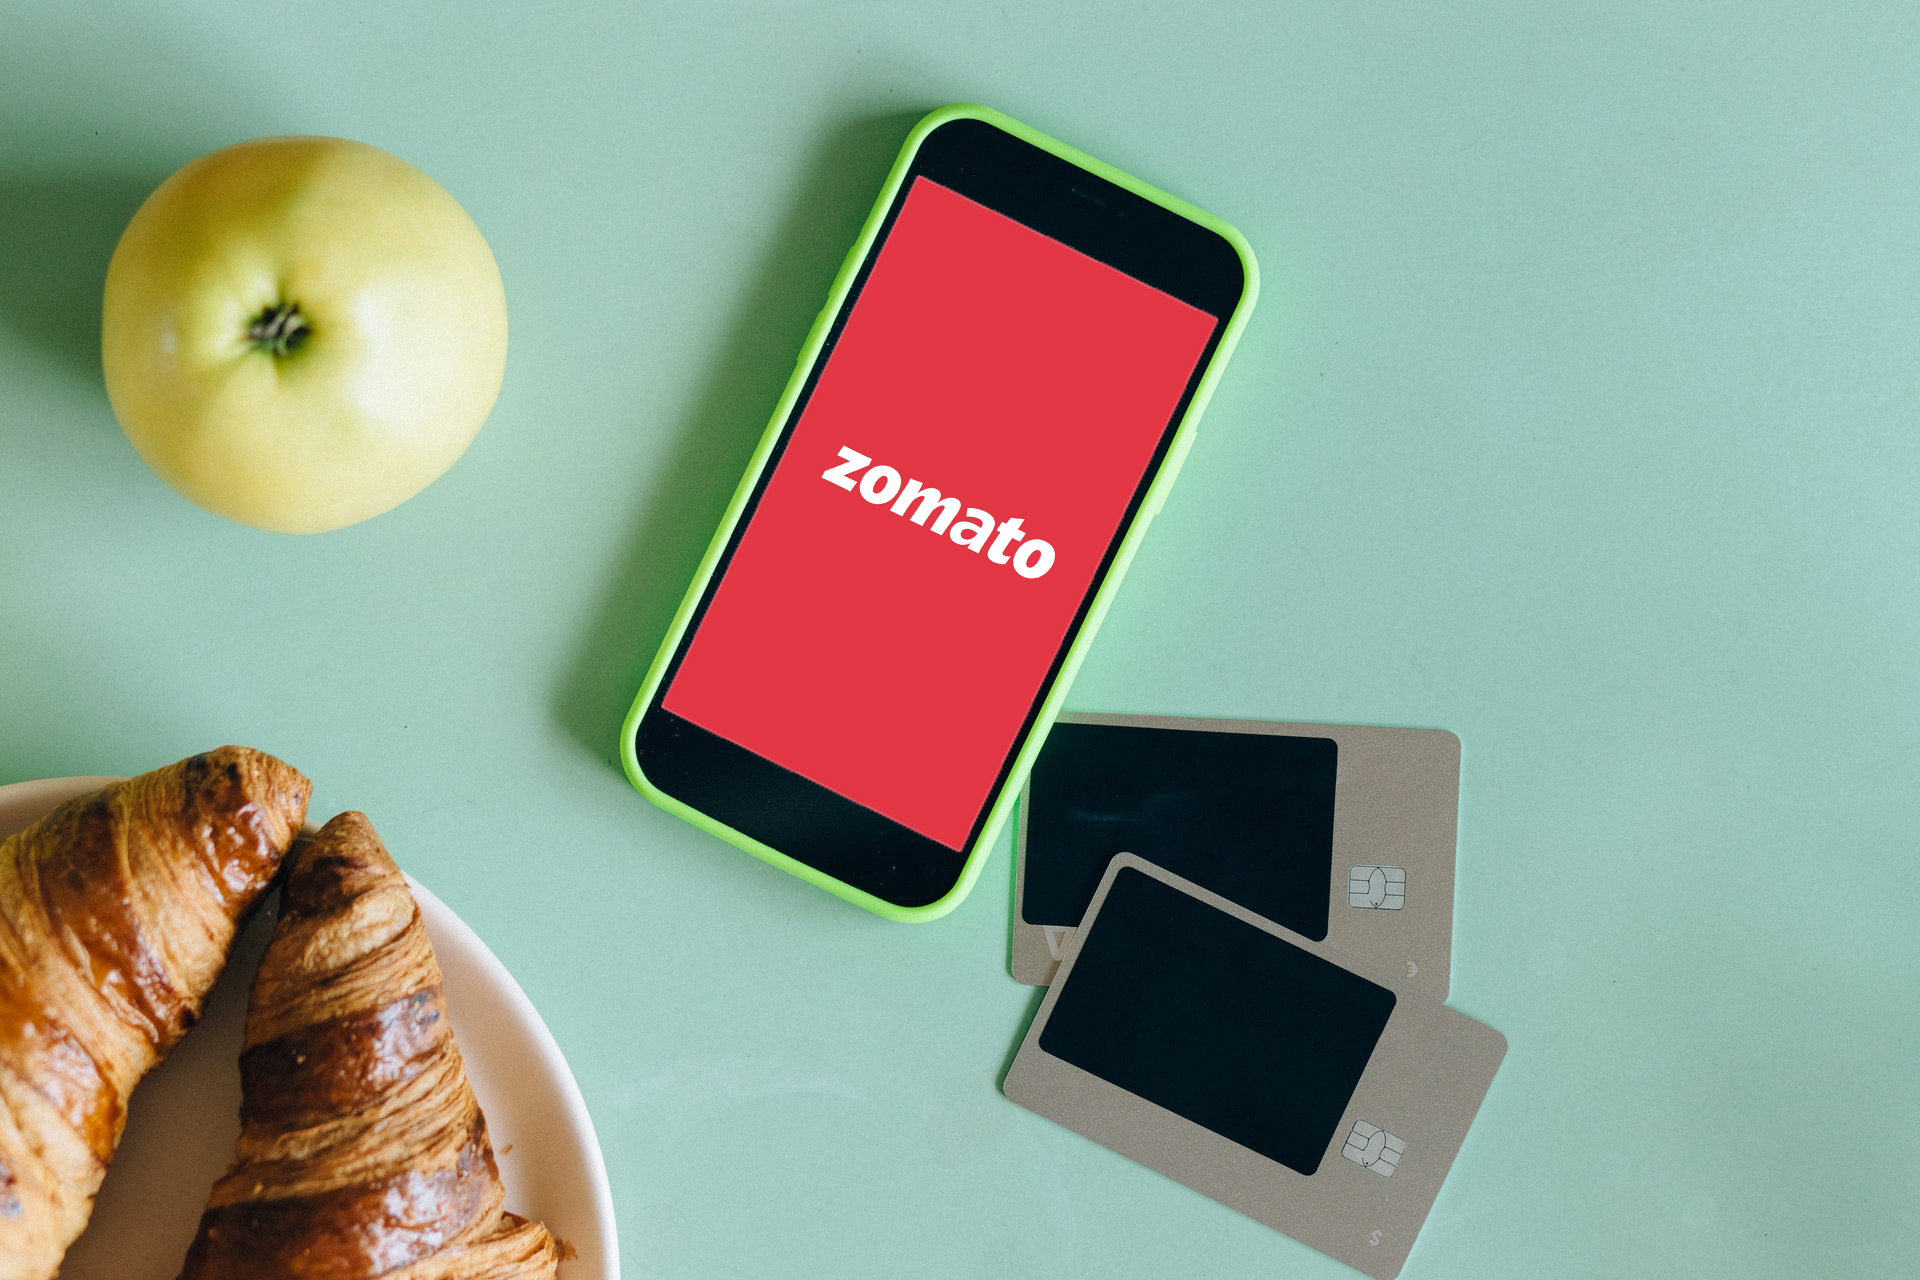 Zomato Logo on Smartphone with Green Case